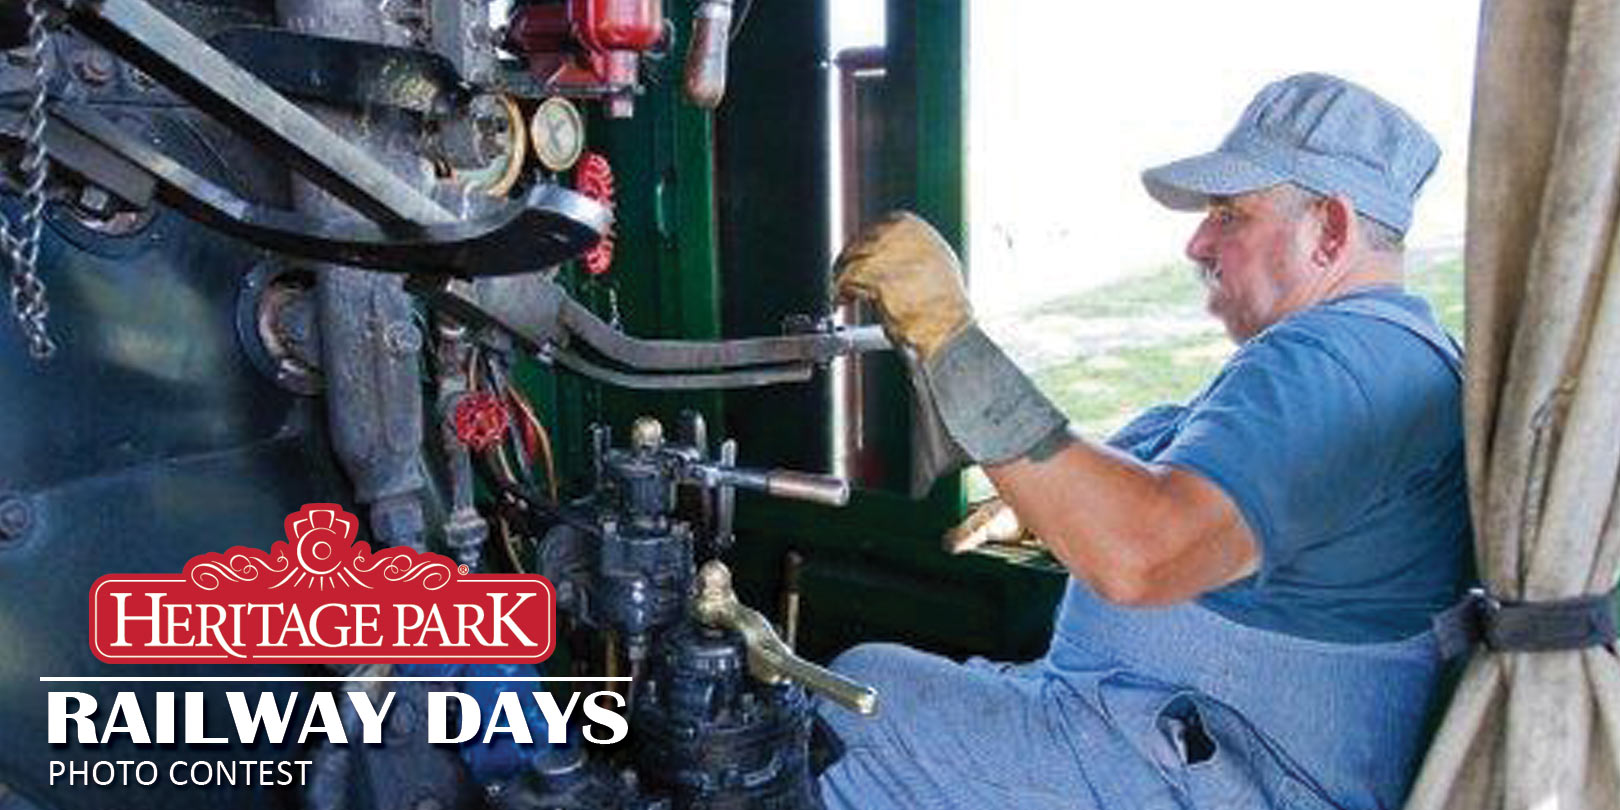 Enter Heritage Park's 2016 Railway Days Photo Contest – The